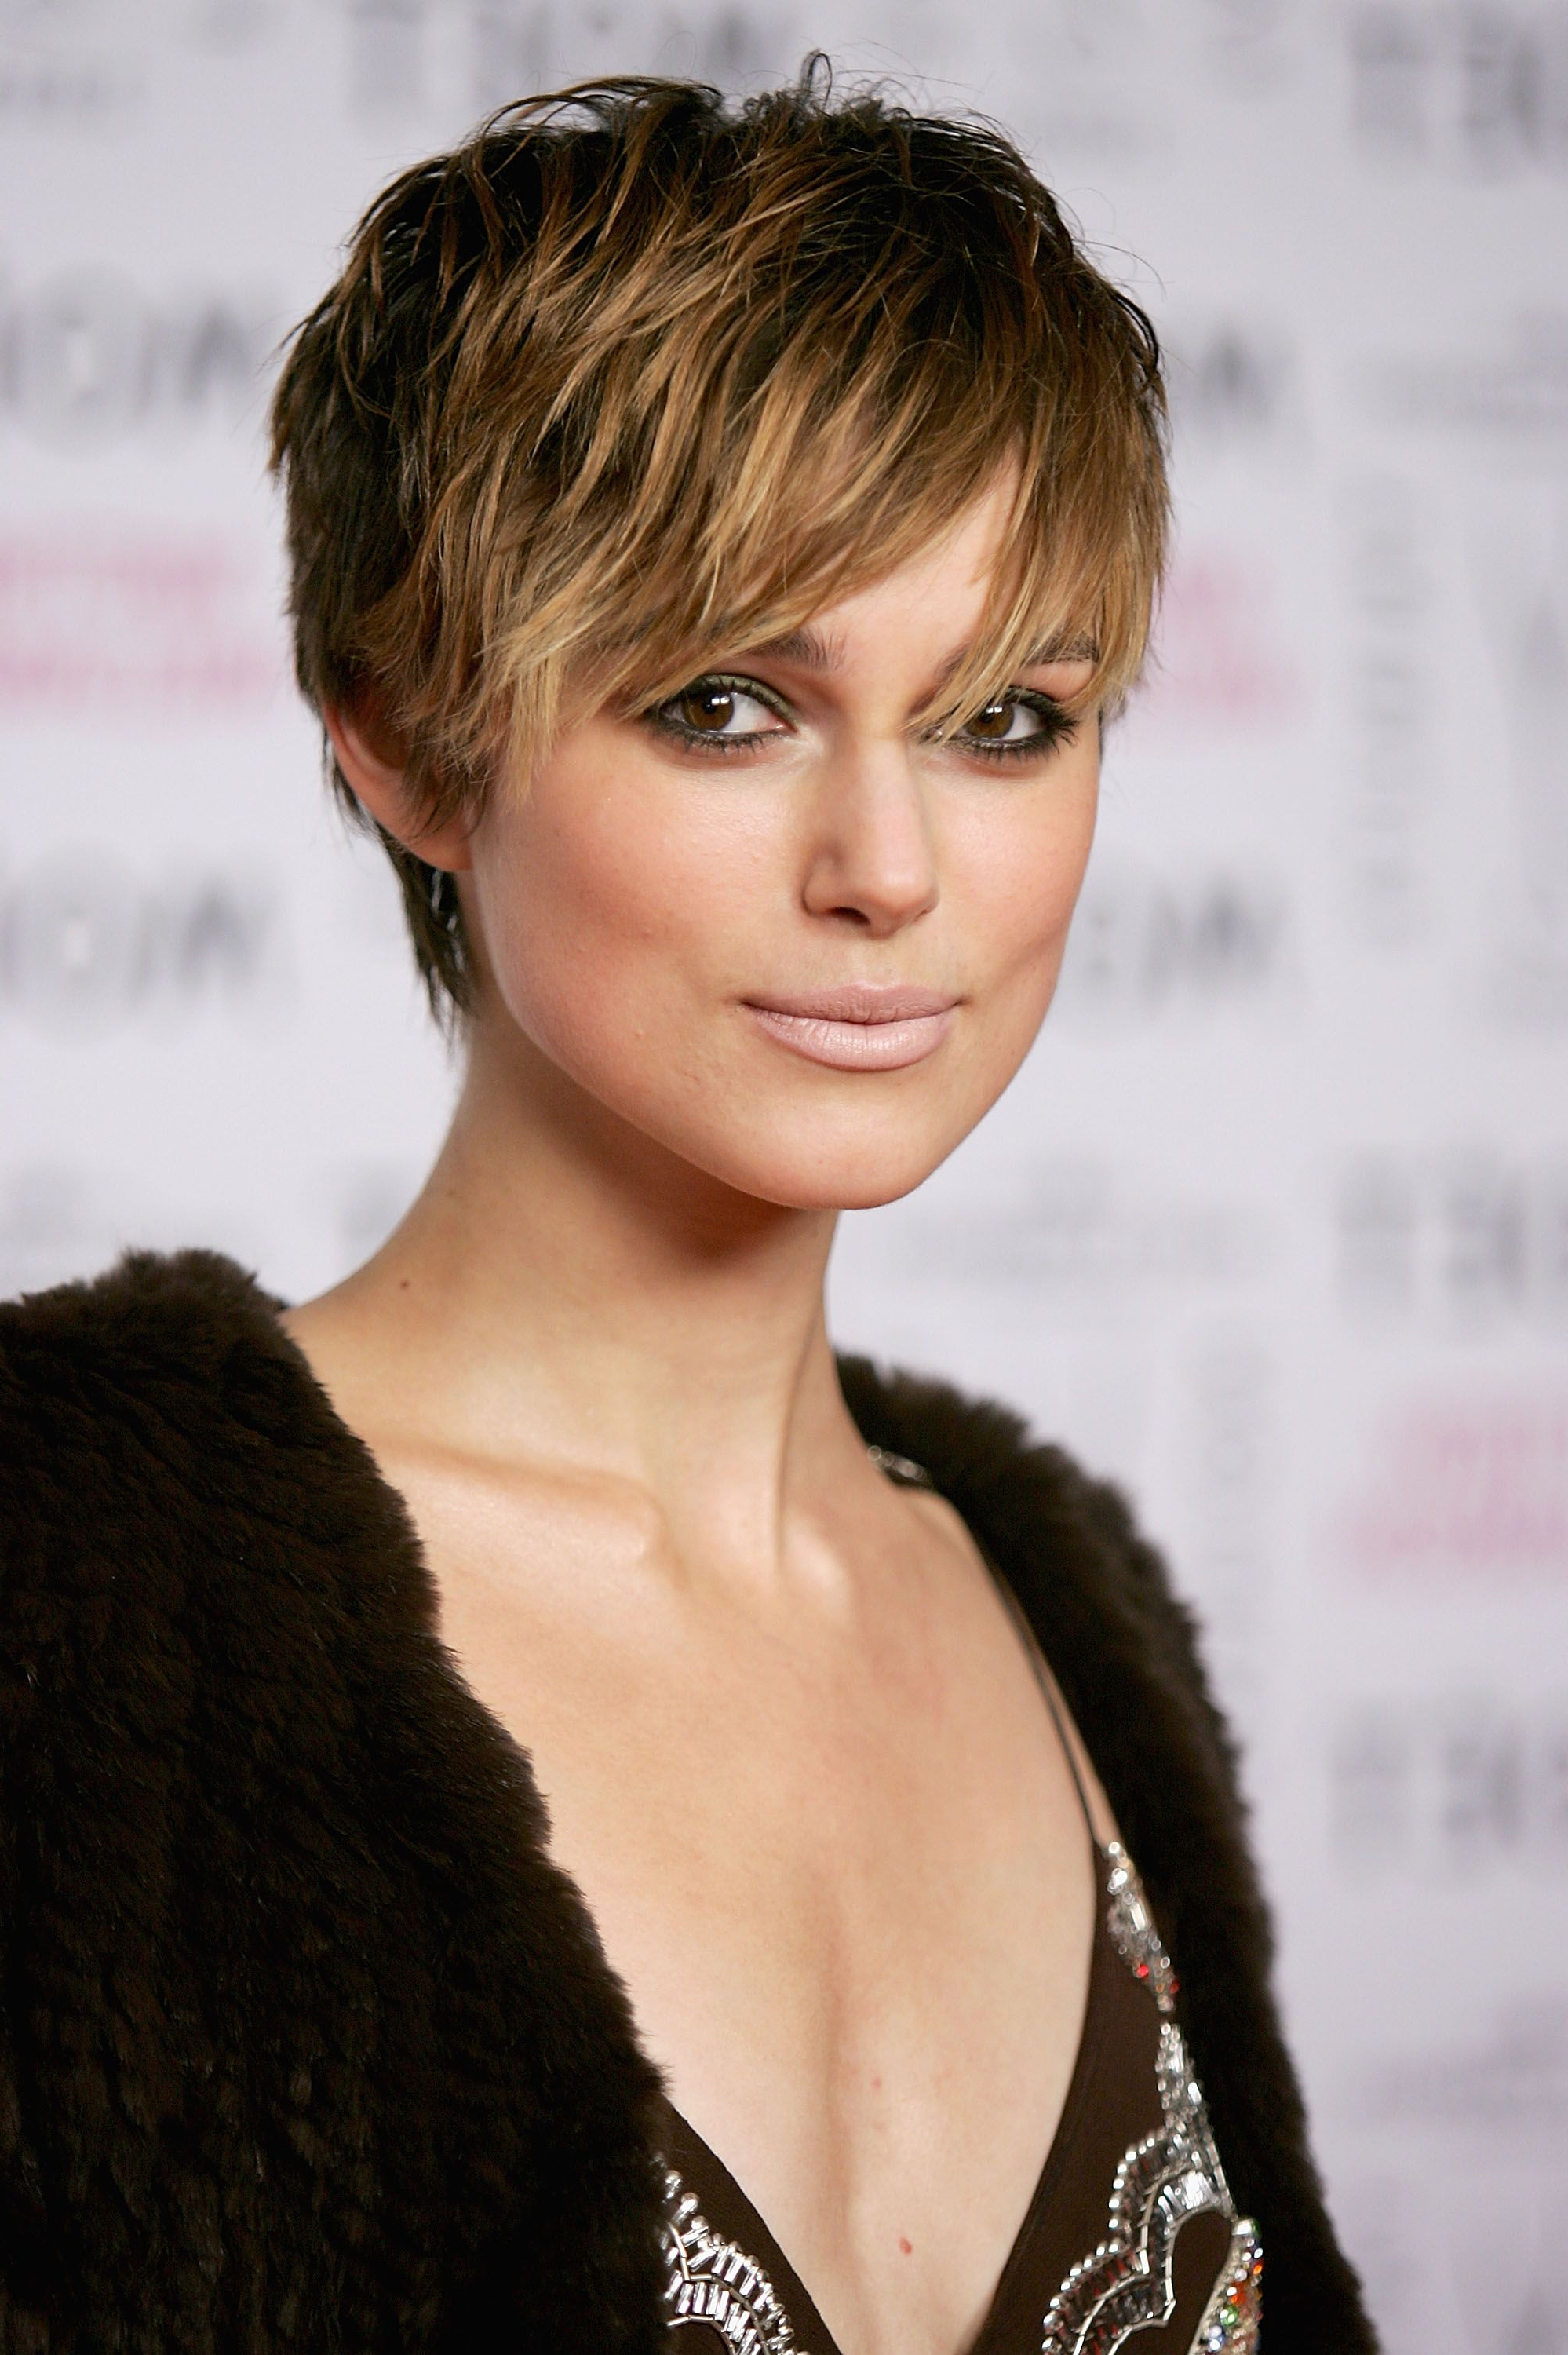 53 Best Pixie Cut Hairstyle Ideas 2018 – Cute Celebrity Pixie Haircuts Intended For Over 50 Pixie Hairstyles With Lots Of Piece Y Layers (View 14 of 20)